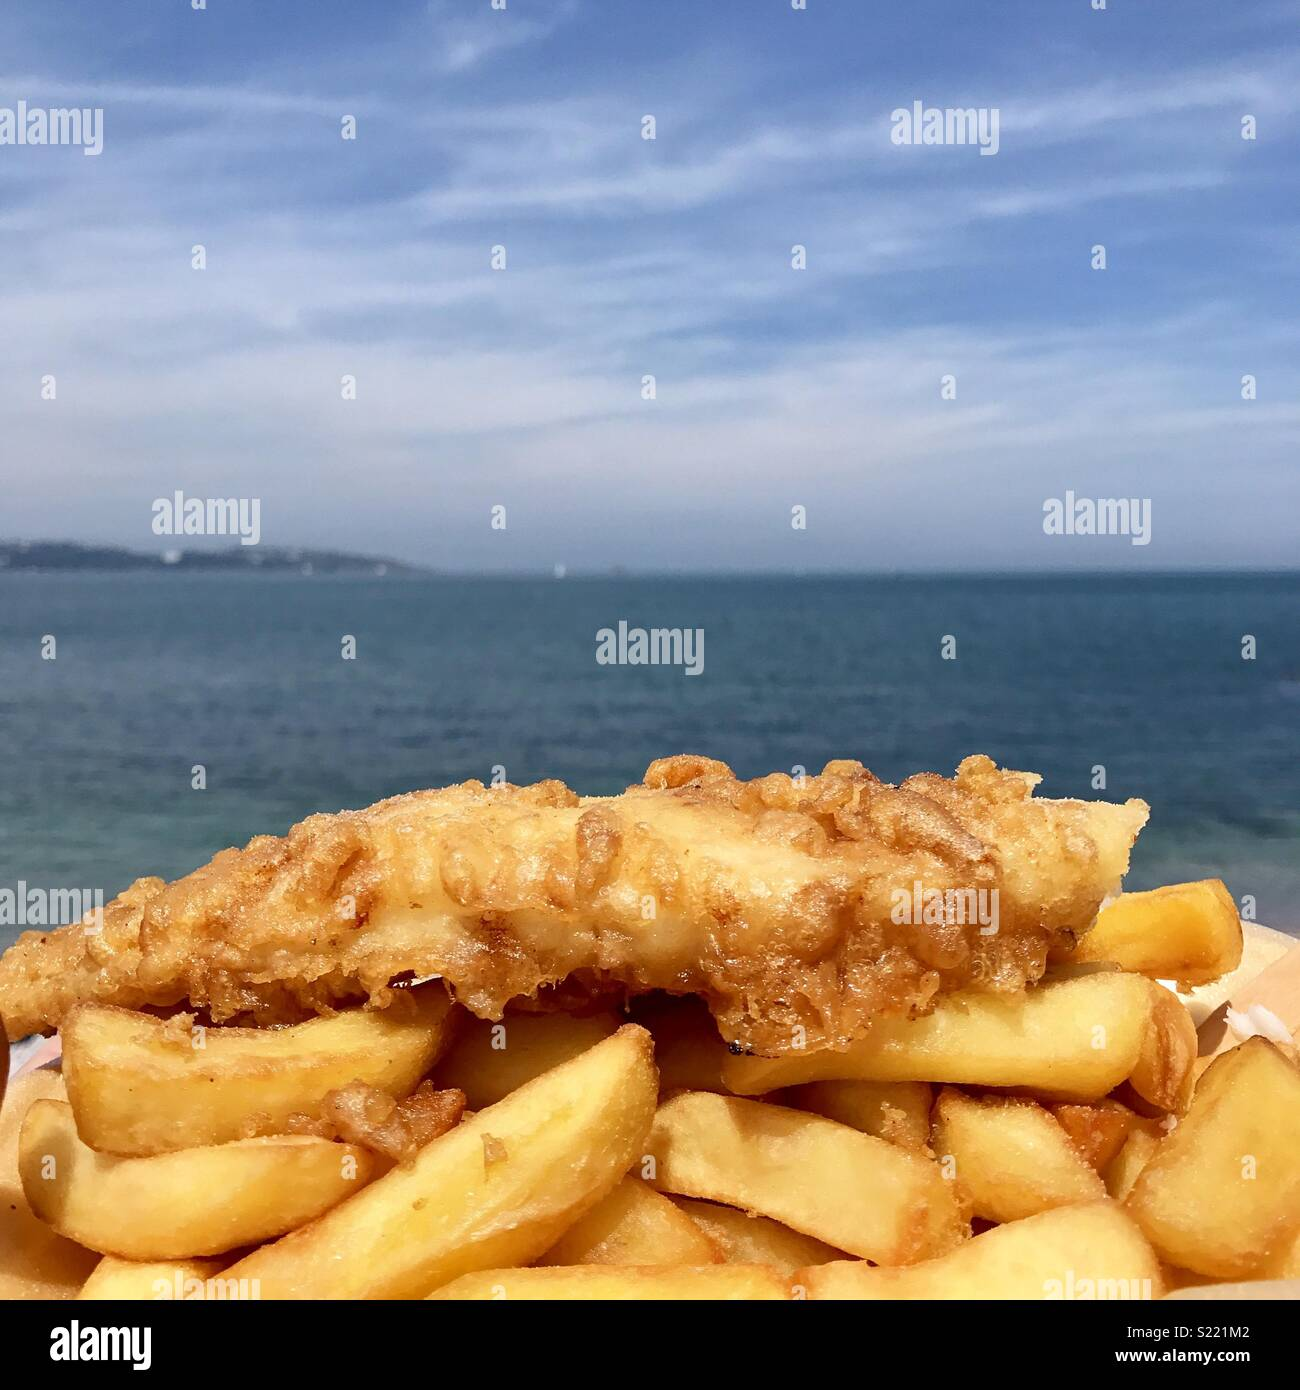 Fish and chips at the seaside in Brixham, Devon. - Stock Image